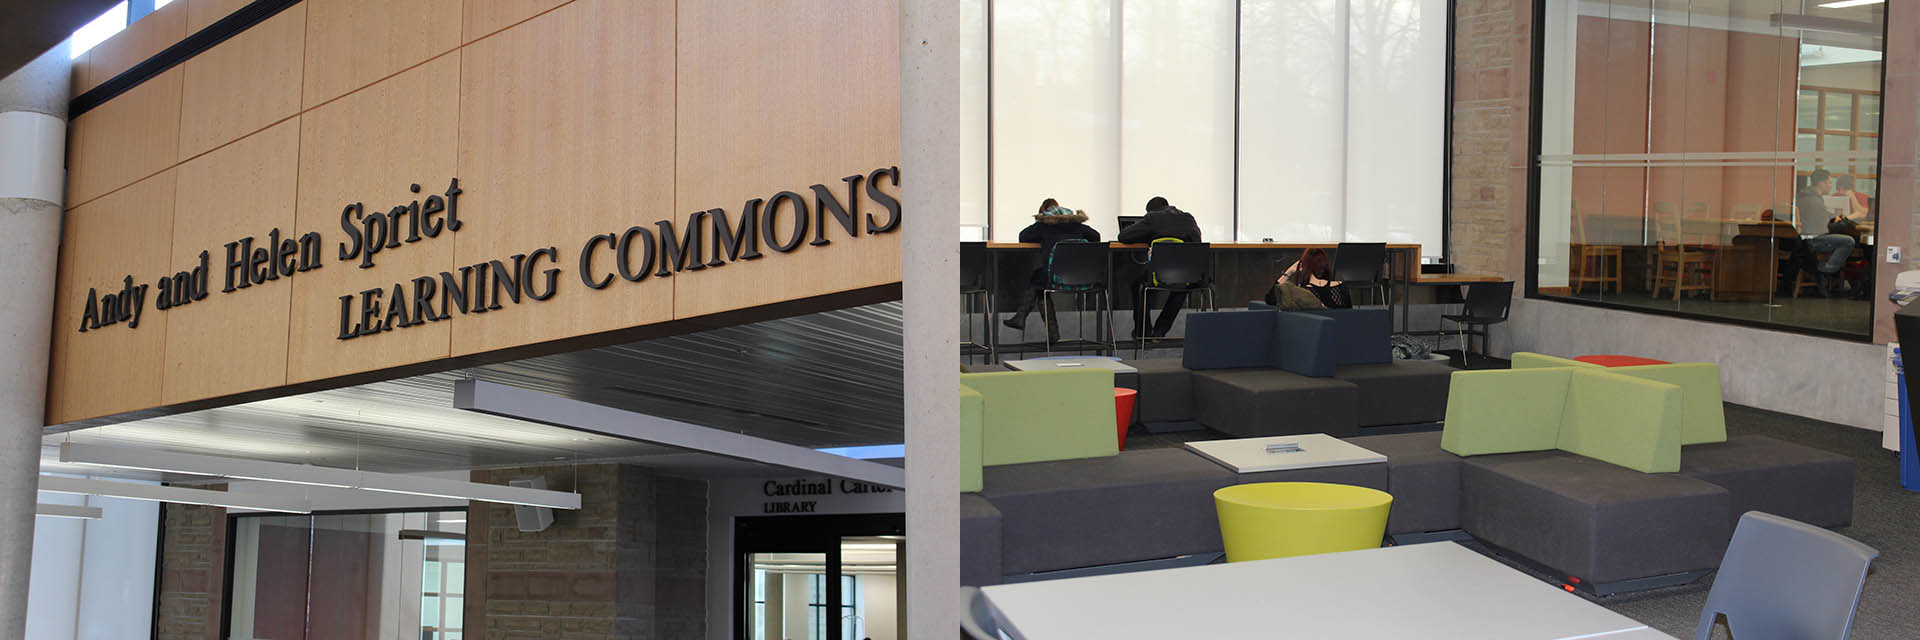 Image: Learning Commons